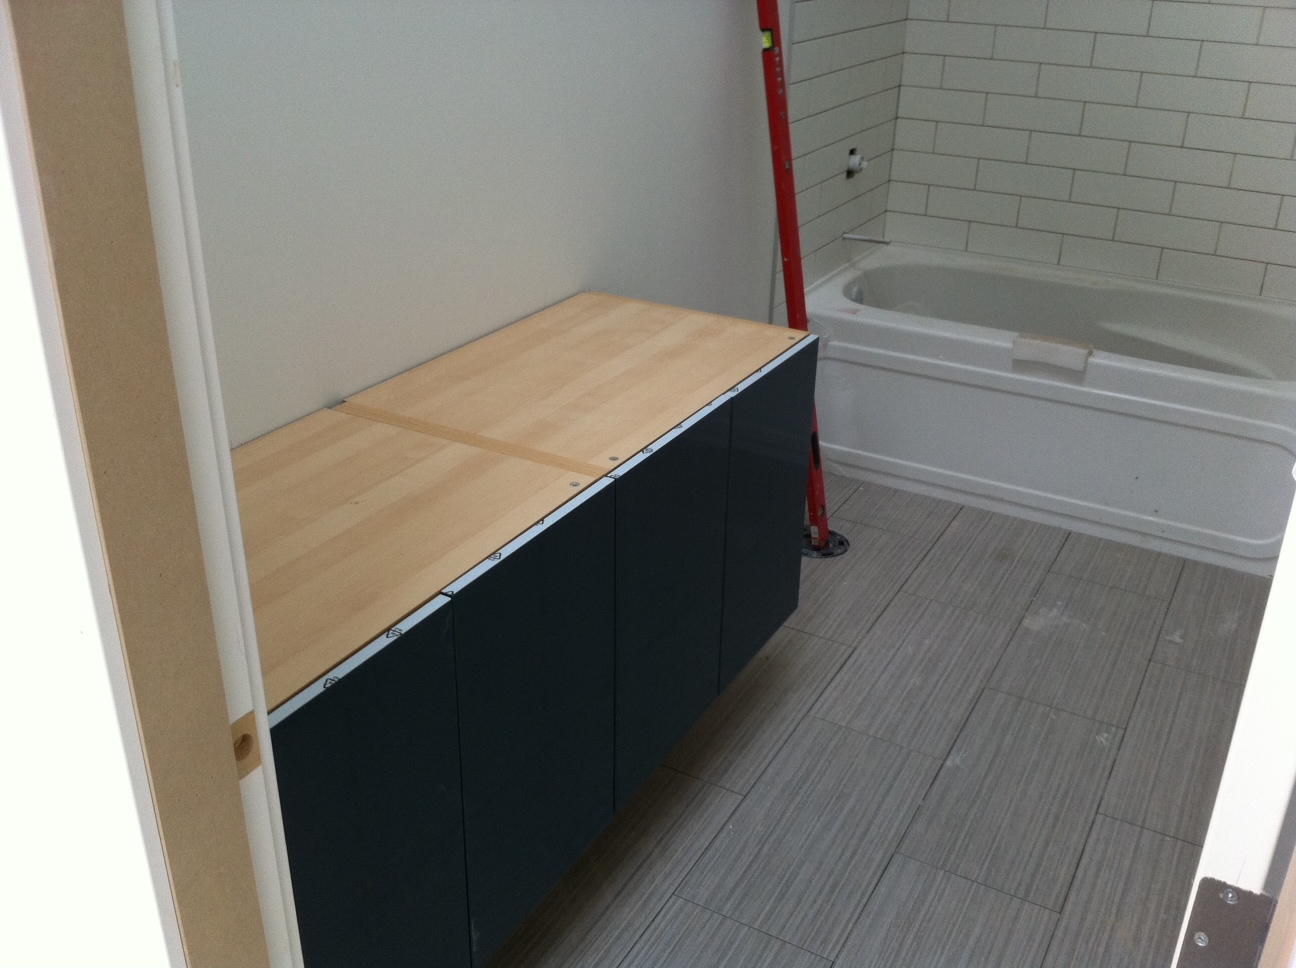 Floating ikea vanity and basement vanity.  The Mt. Pleasant Houses